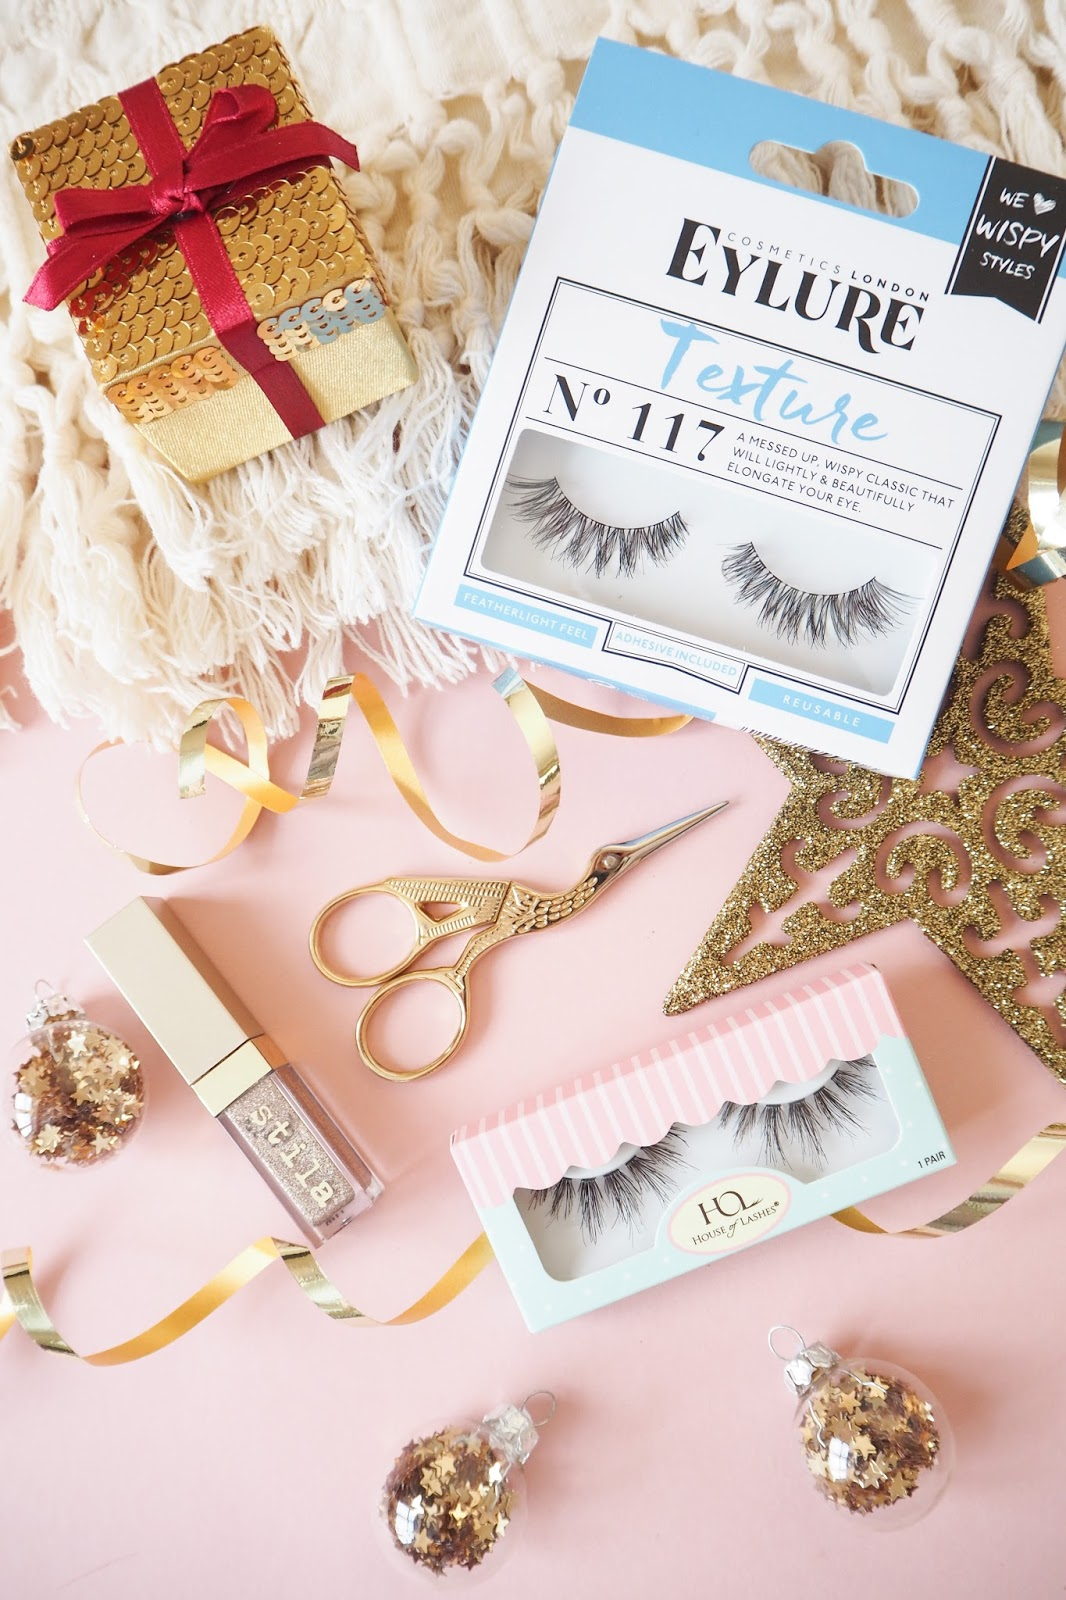 Tips on how to apply false lashes - Eylure lashes and House of Lashes false lashes